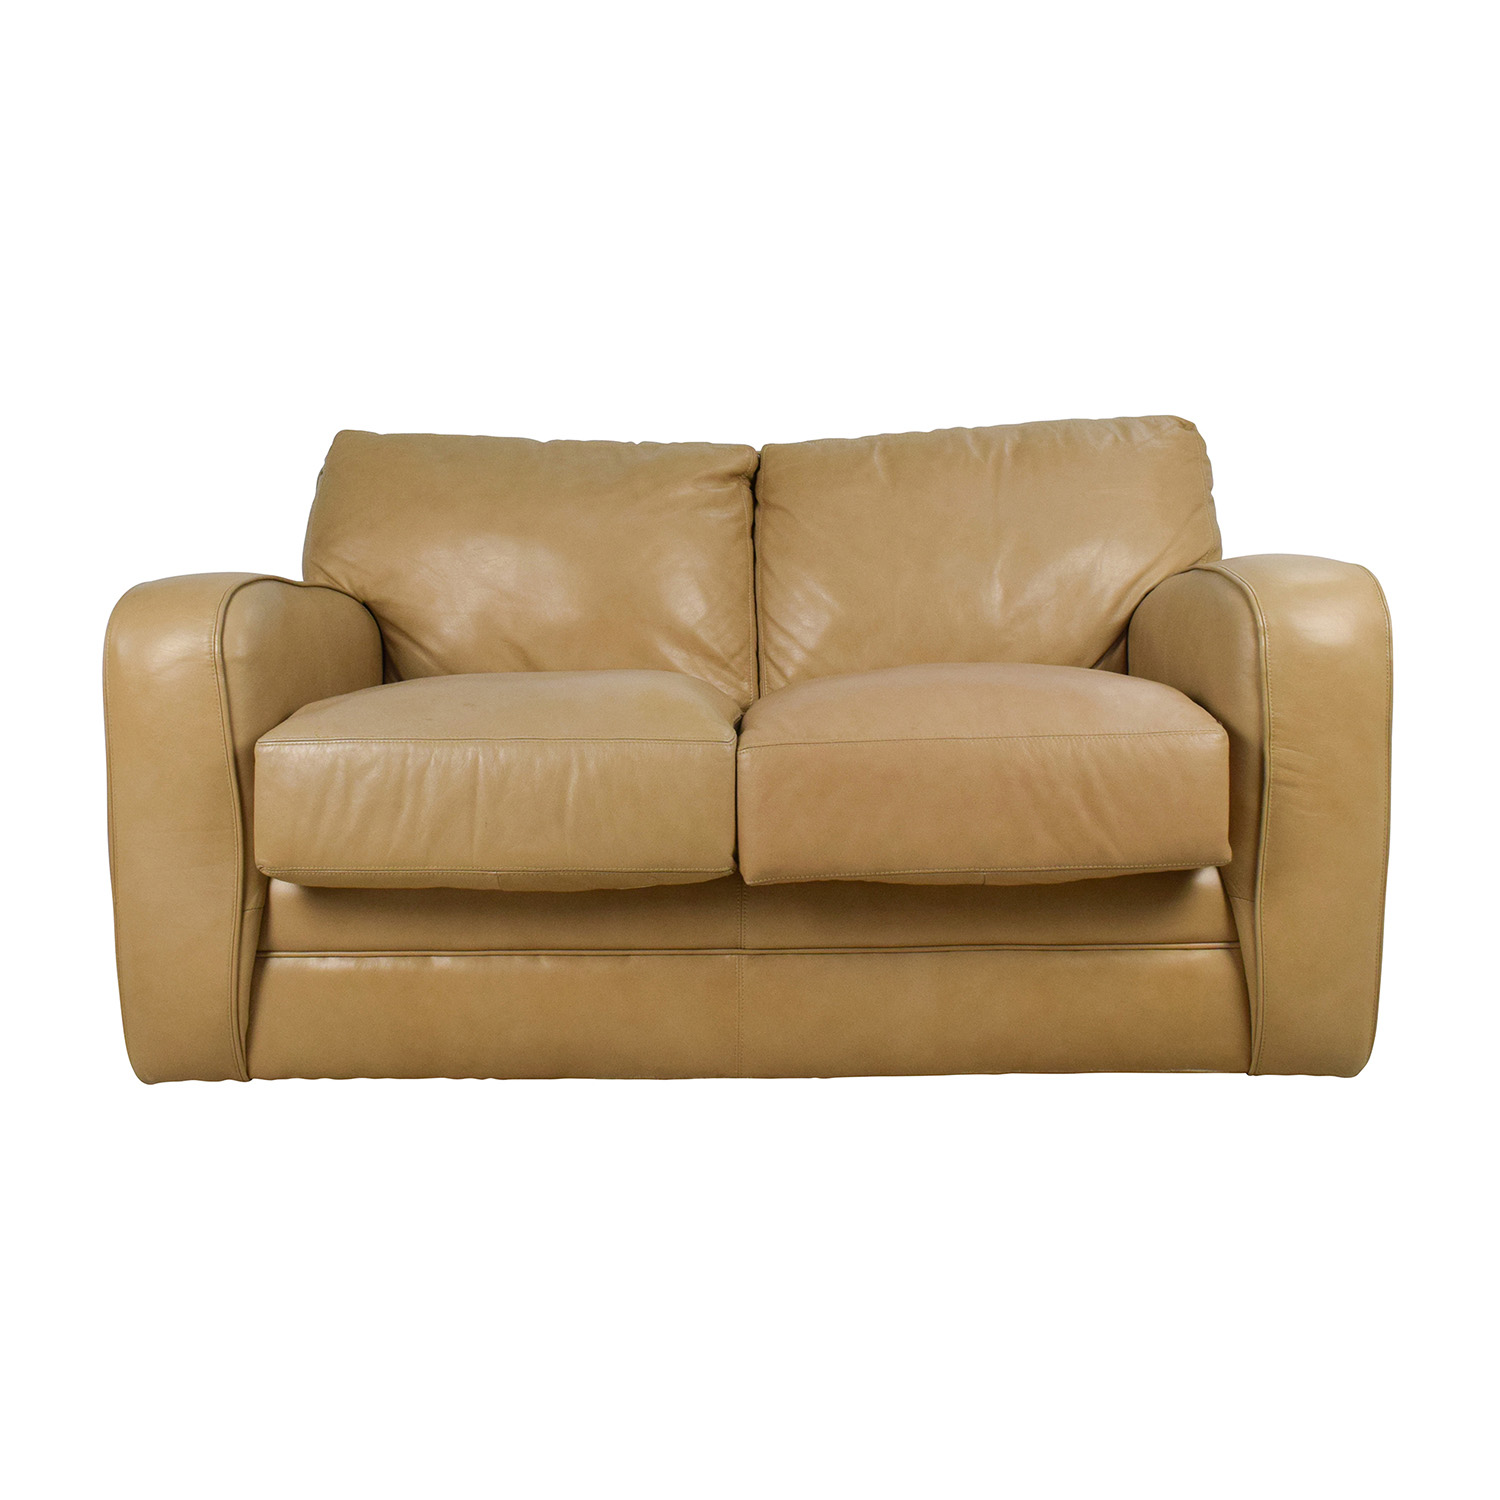 Leather Sofa Beige: Beige Leather Loveseat / Sofas